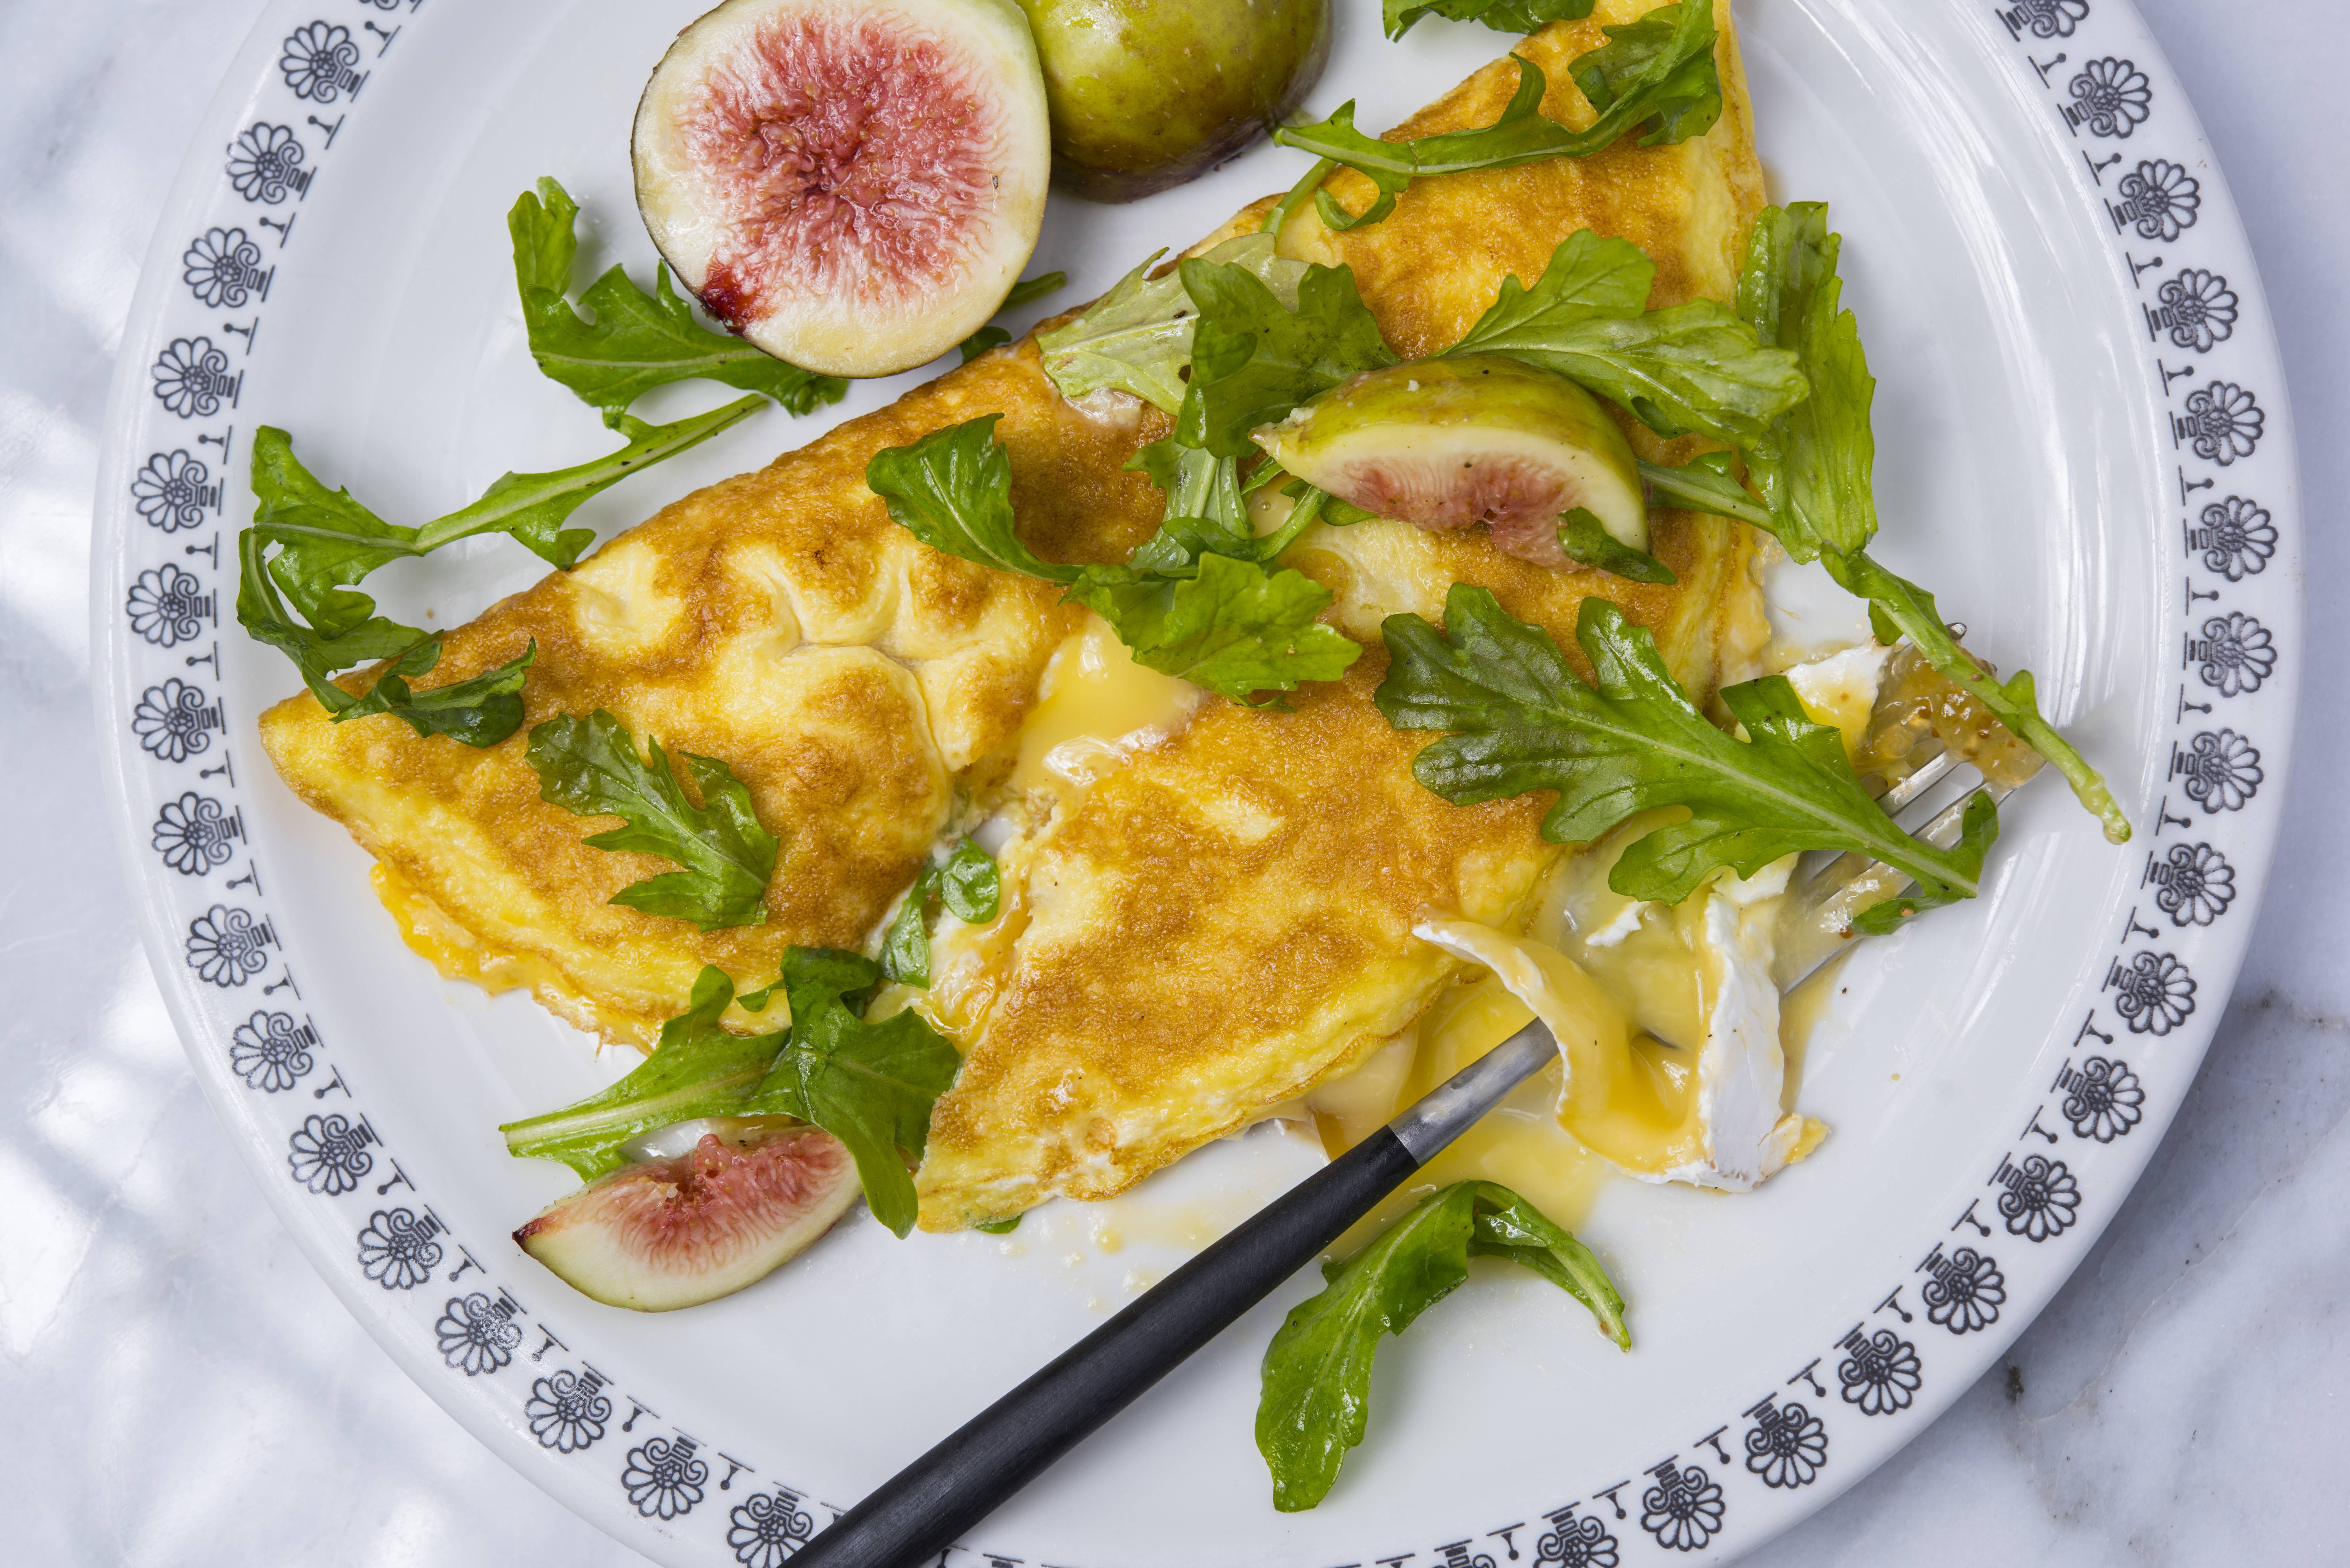 The combination of a not-too-sweet fruit, a pungent and melty cheese, soft egg with crisped edges and peppery greens makes these omelets a terrific option for brunch as well as dinner.